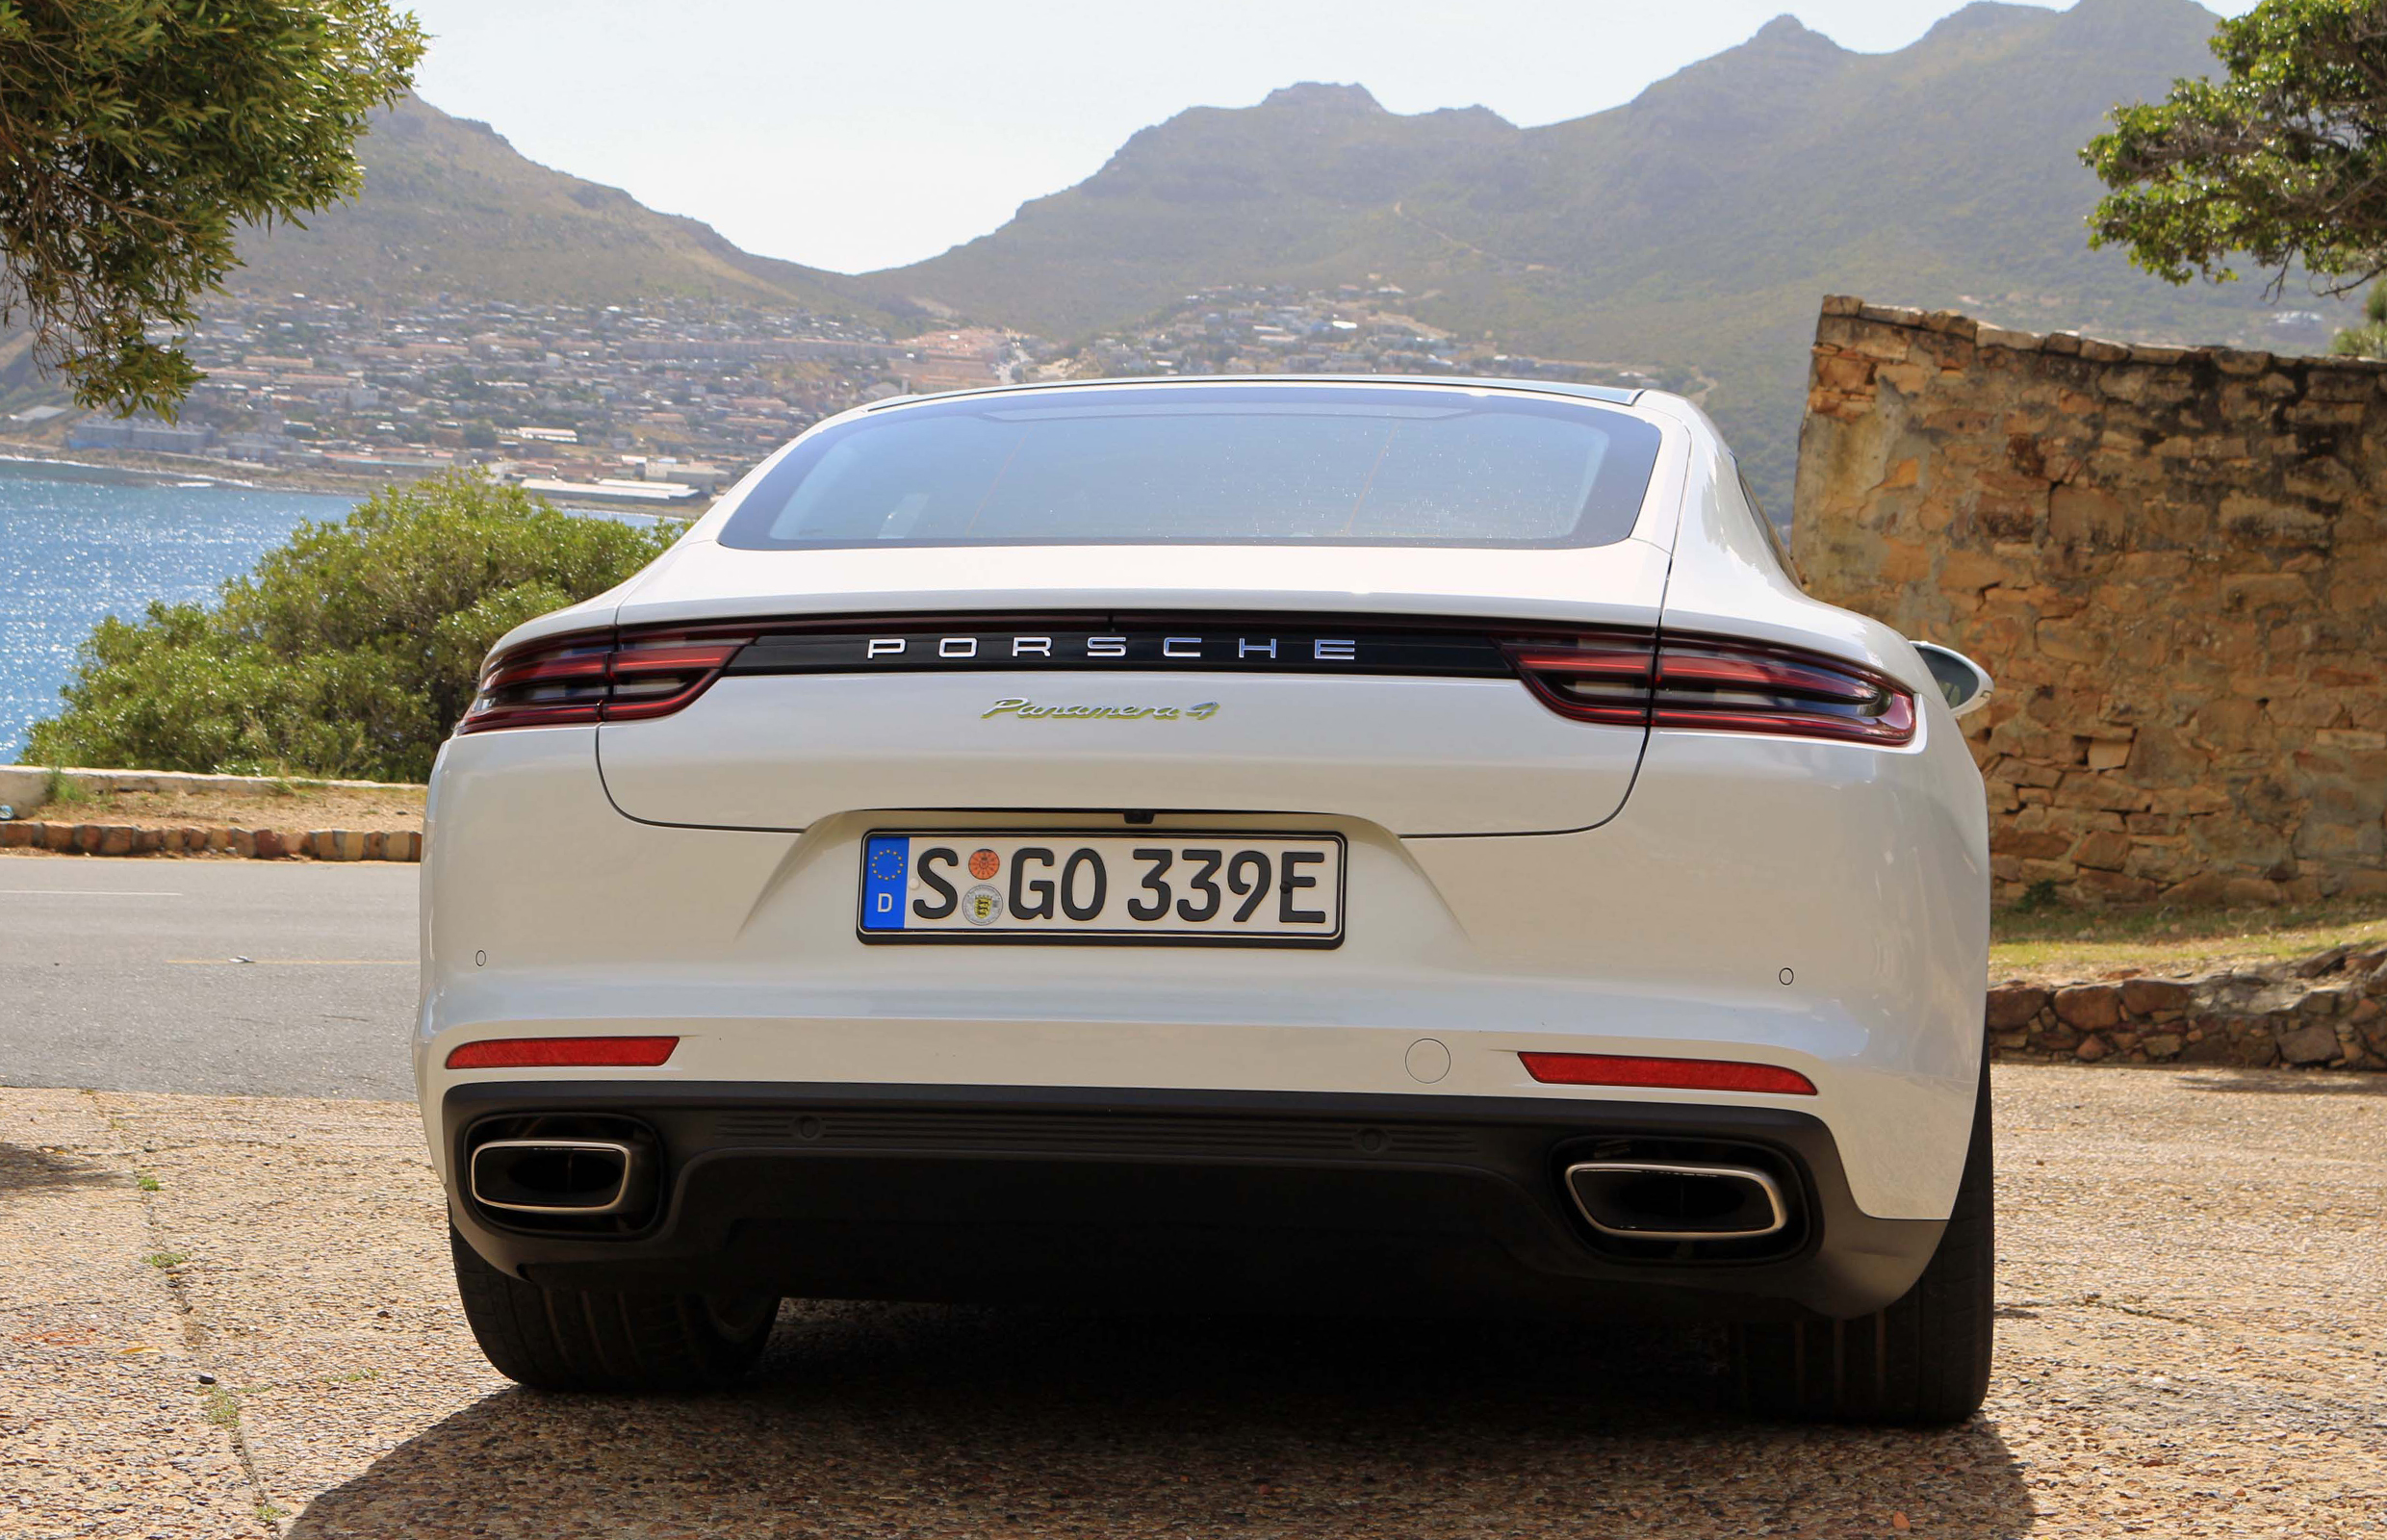 2018 Porsche Panamera 4 E Hybrid Exterior Rear (Photo 5 of 10)